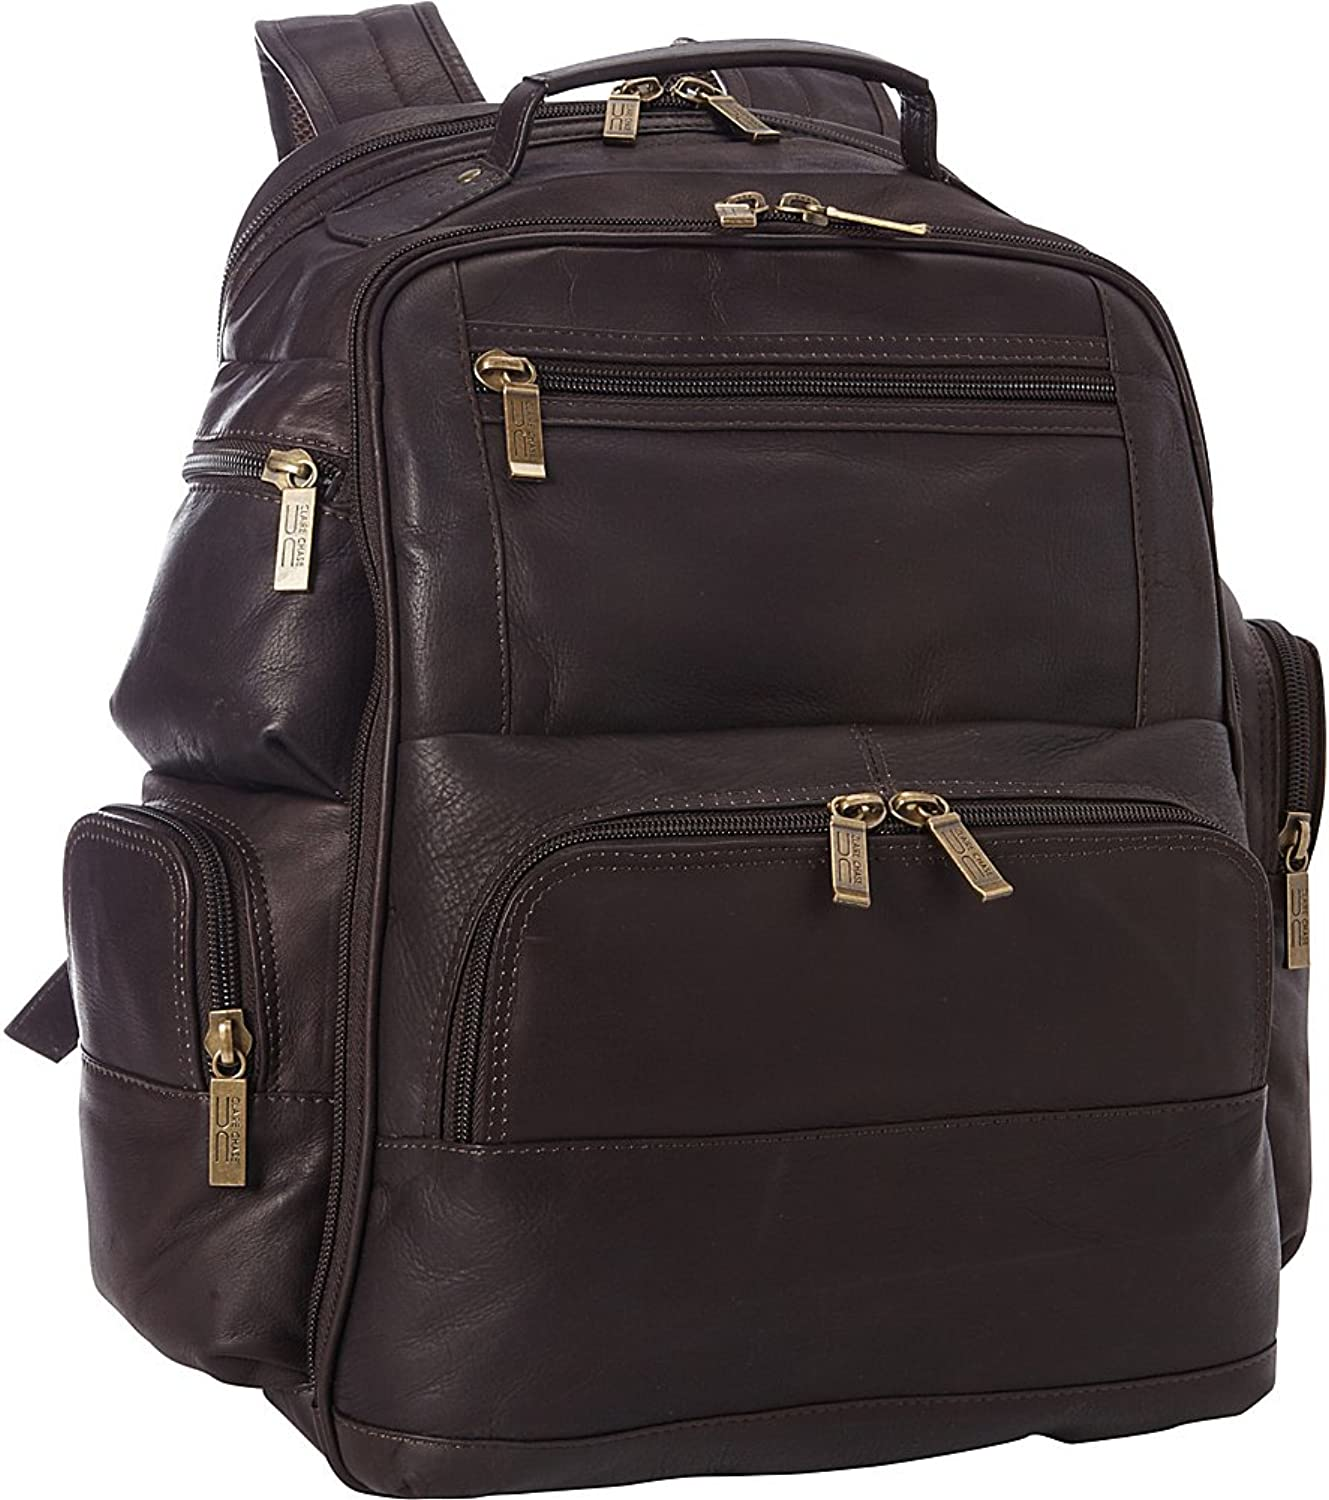 Claire Chase Executive Backpack2, Café